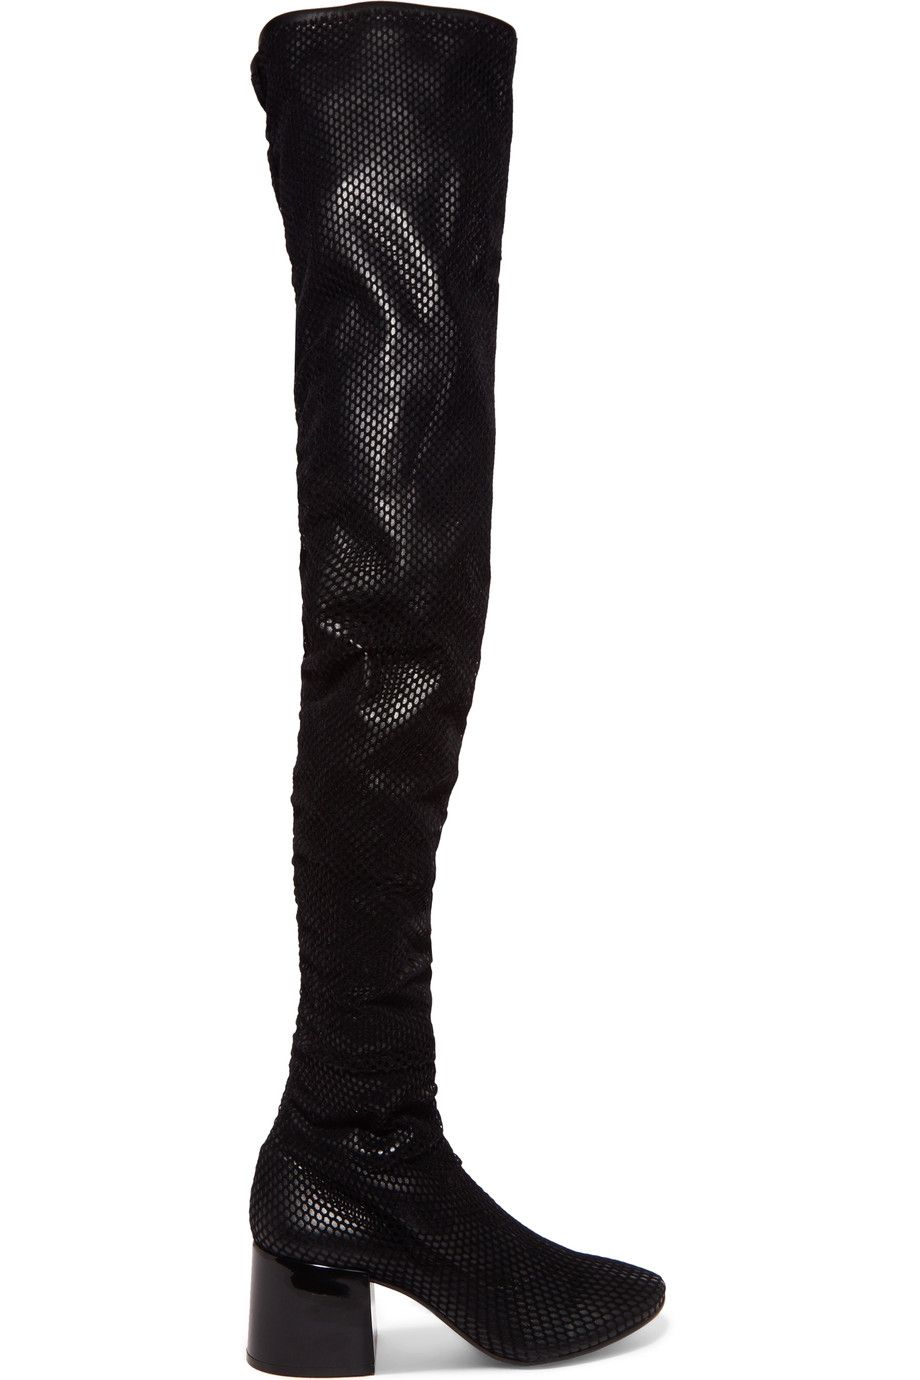 Maison Margiela Leather Thigh-High Boots w/ Tags sale 2015 new the cheapest outlet pay with paypal free shipping recommend buy cheap brand new unisex mVvScCf